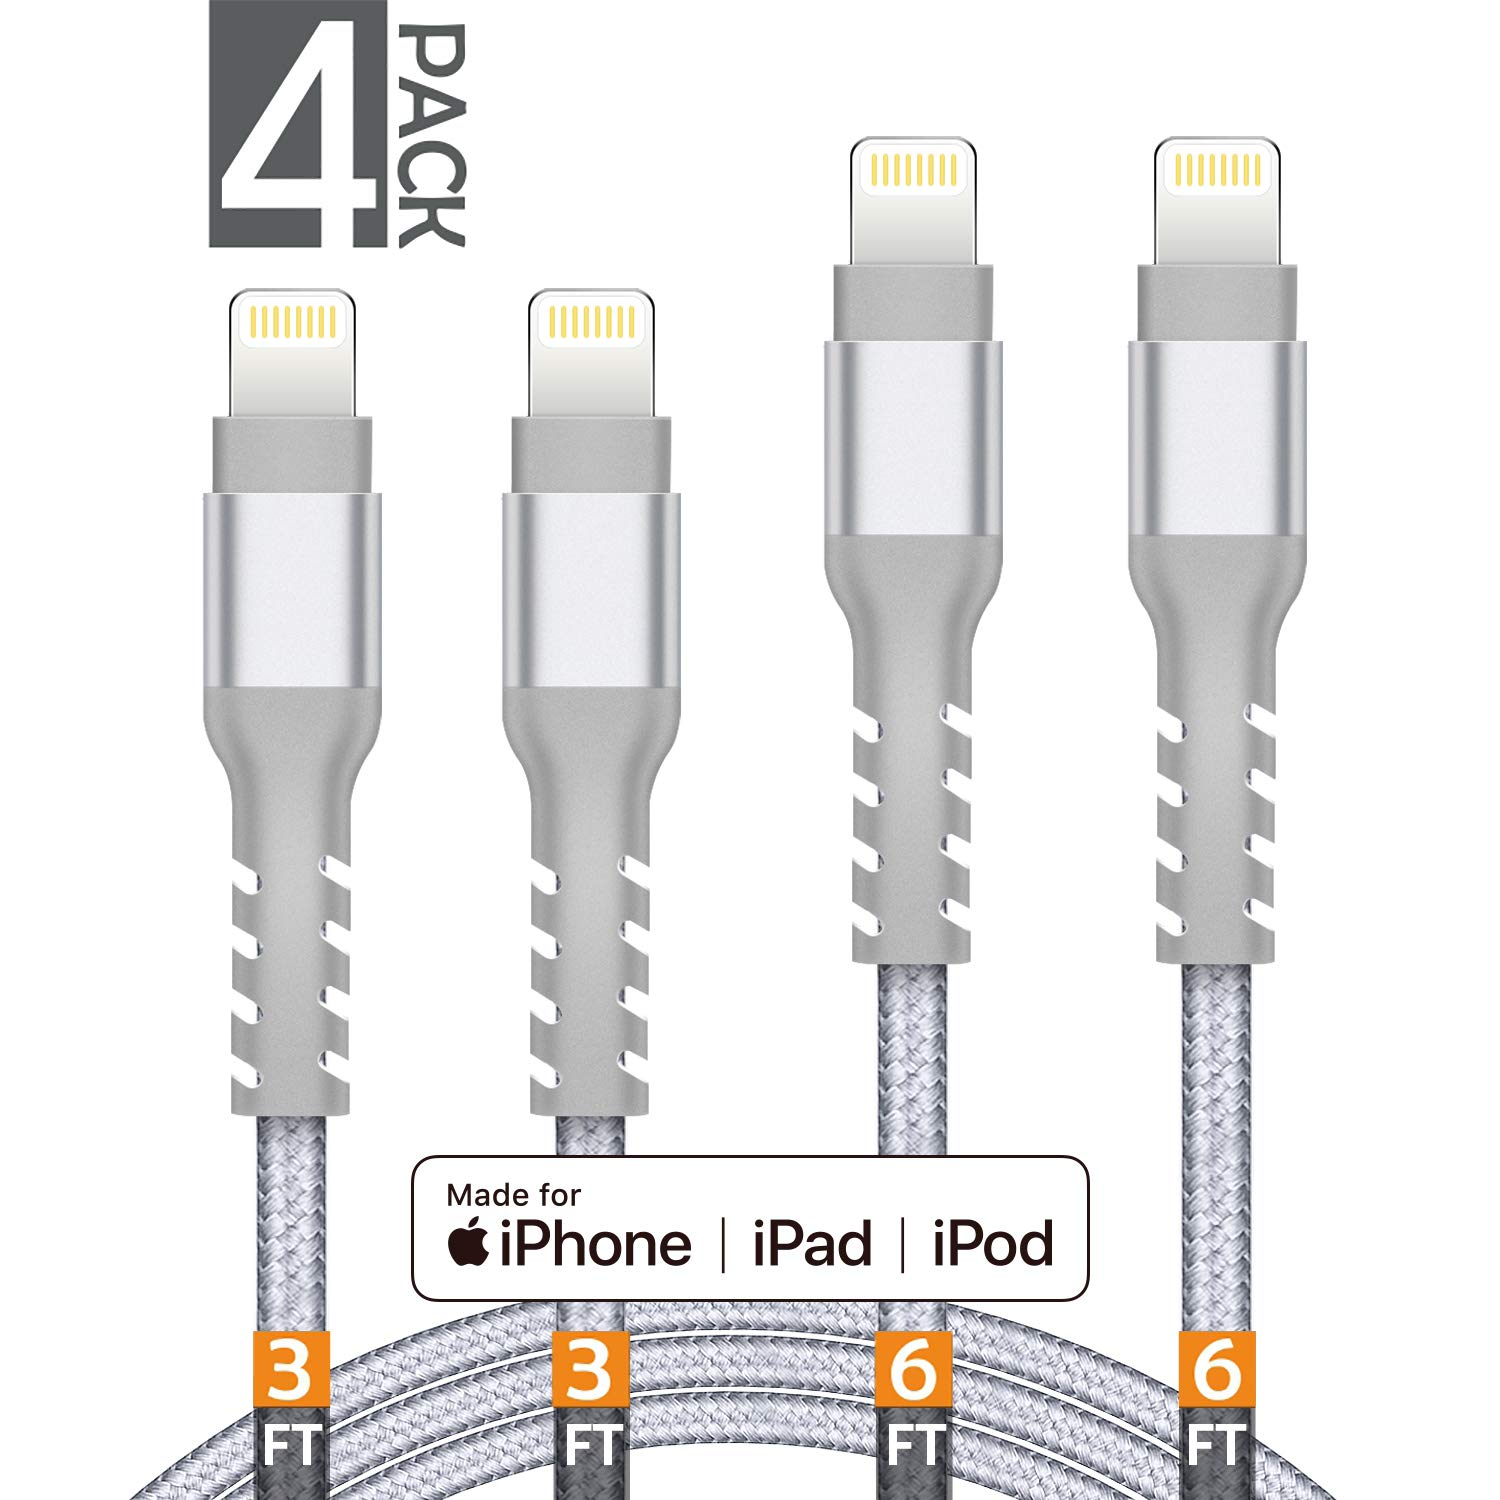 AHGEIIY MFi Certified Charger Cable Nylon Braided 4 Pack [3FT 3FT 6FT 6FT] iPhone Lightning Cable Cord Compatible iPhone X, 8 Plus, 8, 7 Plus, 7, 6 Plus, 6, 6S Plus, 6s, 5, iPad and More(Silver)